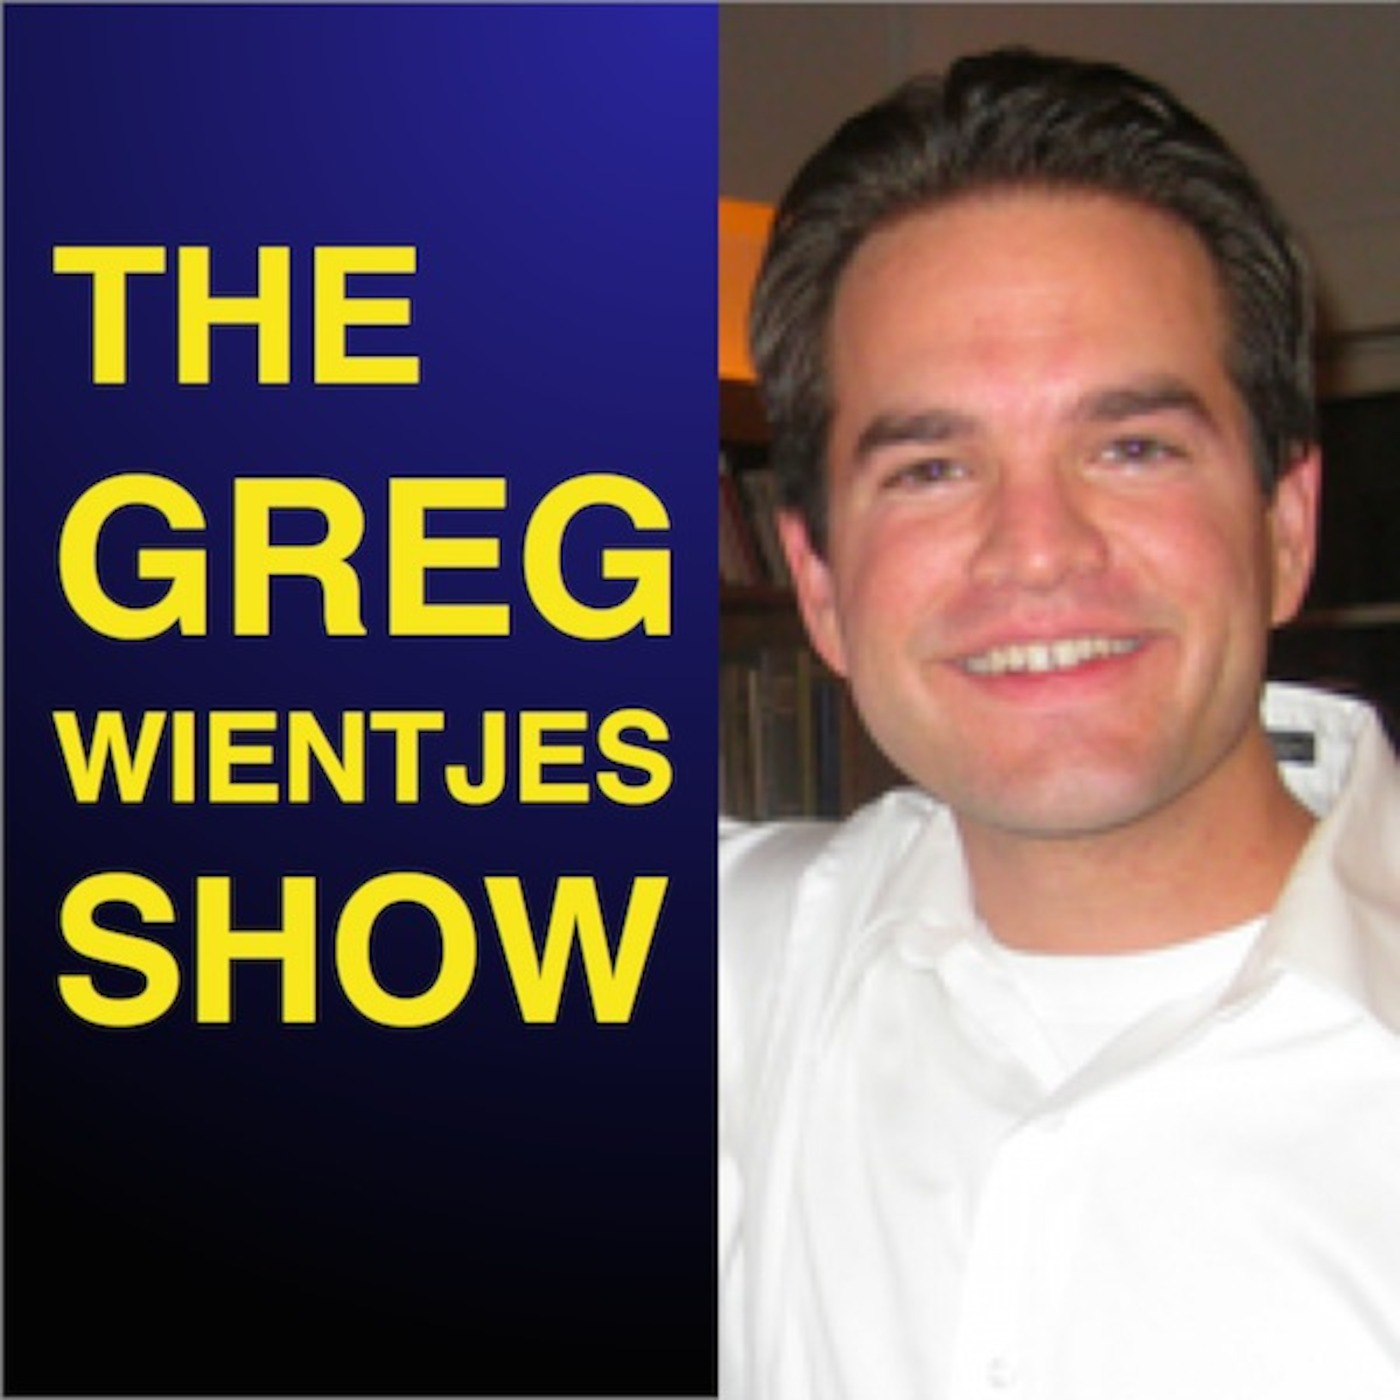 The Greg Wientjes Show